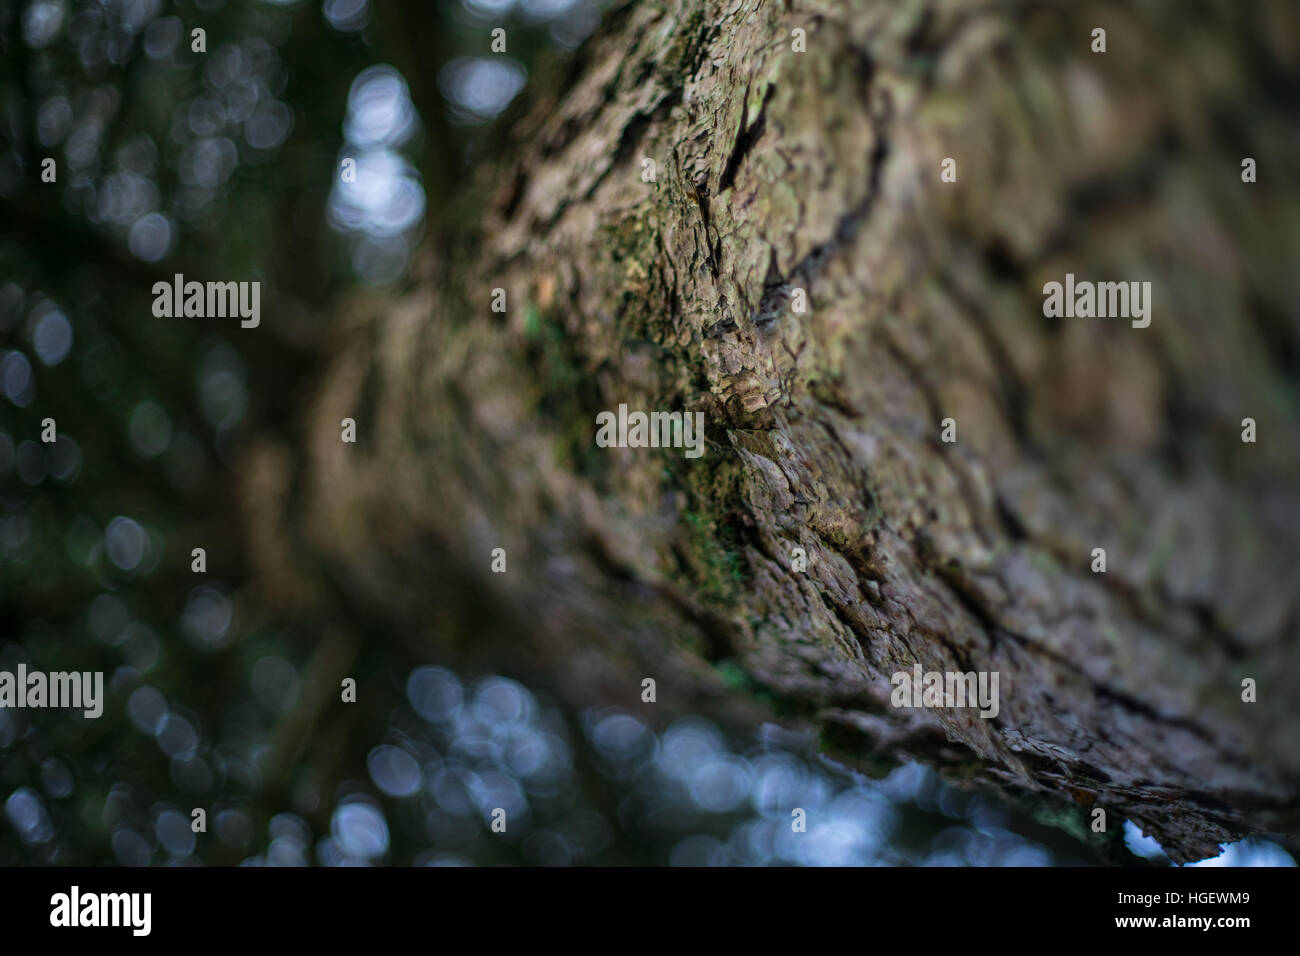 Detailed closeup of tree trunk looking upwards towards blurred leaves and blue sky - Stock Image